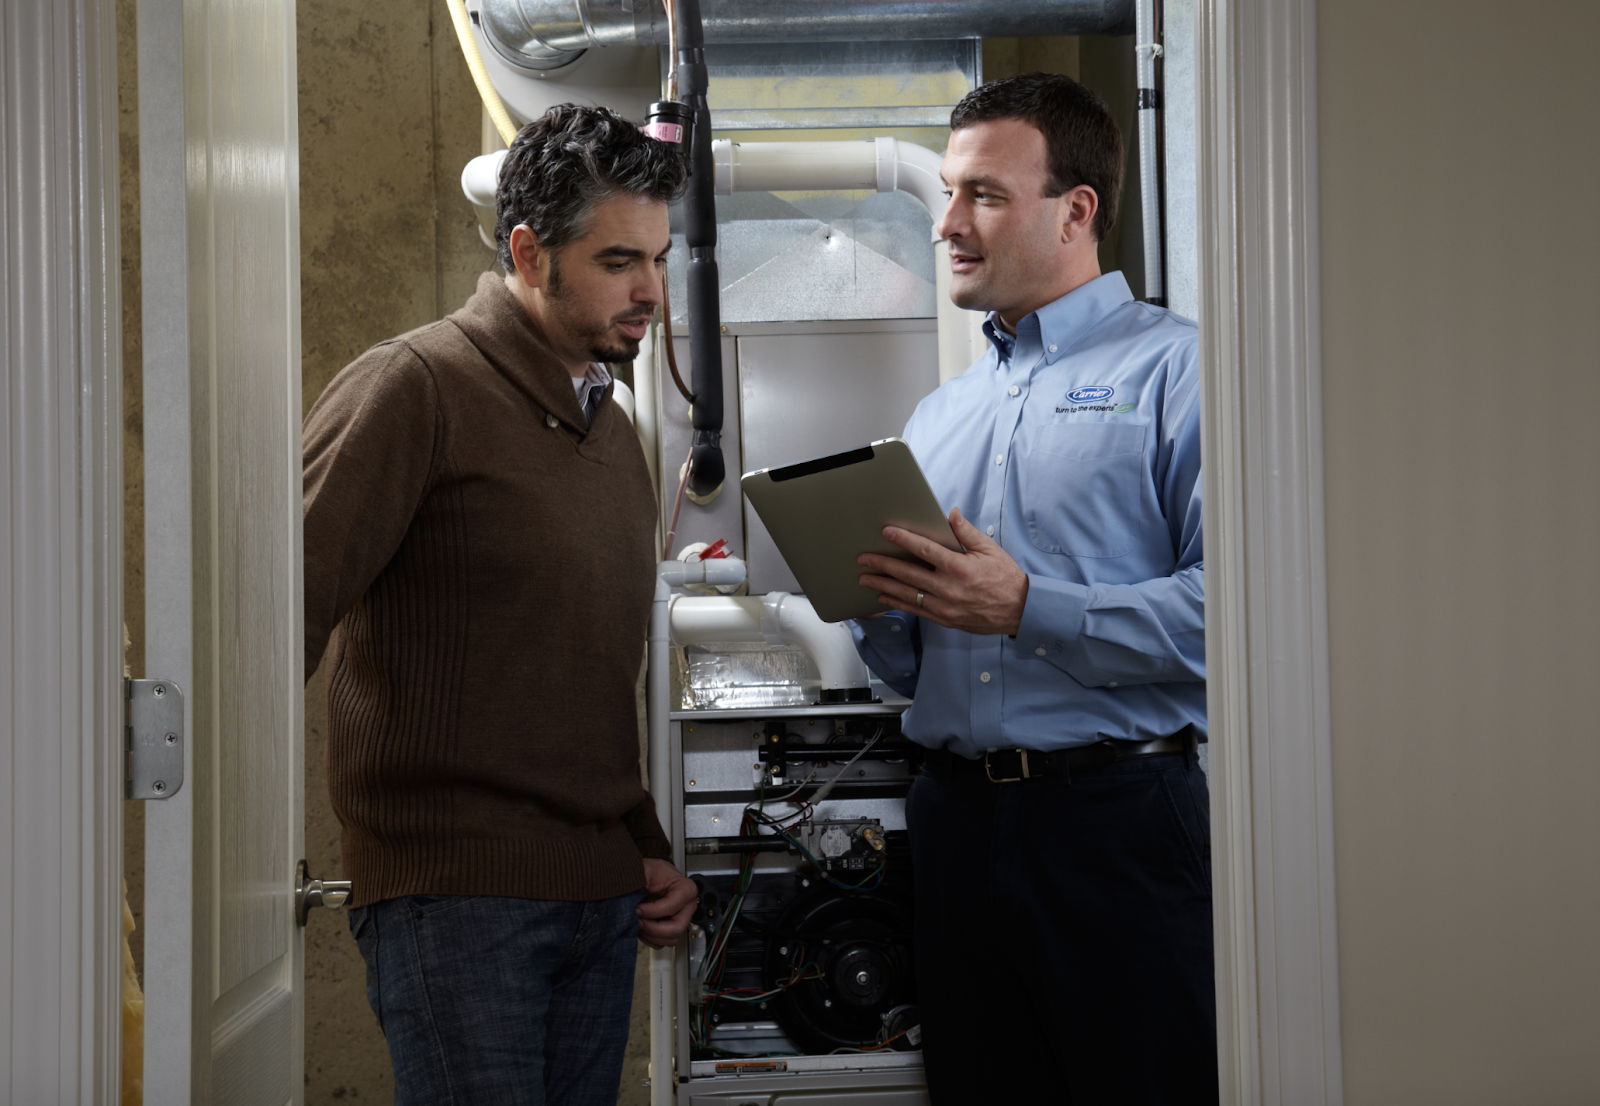 Boiler repairman reviewing checklist with a client